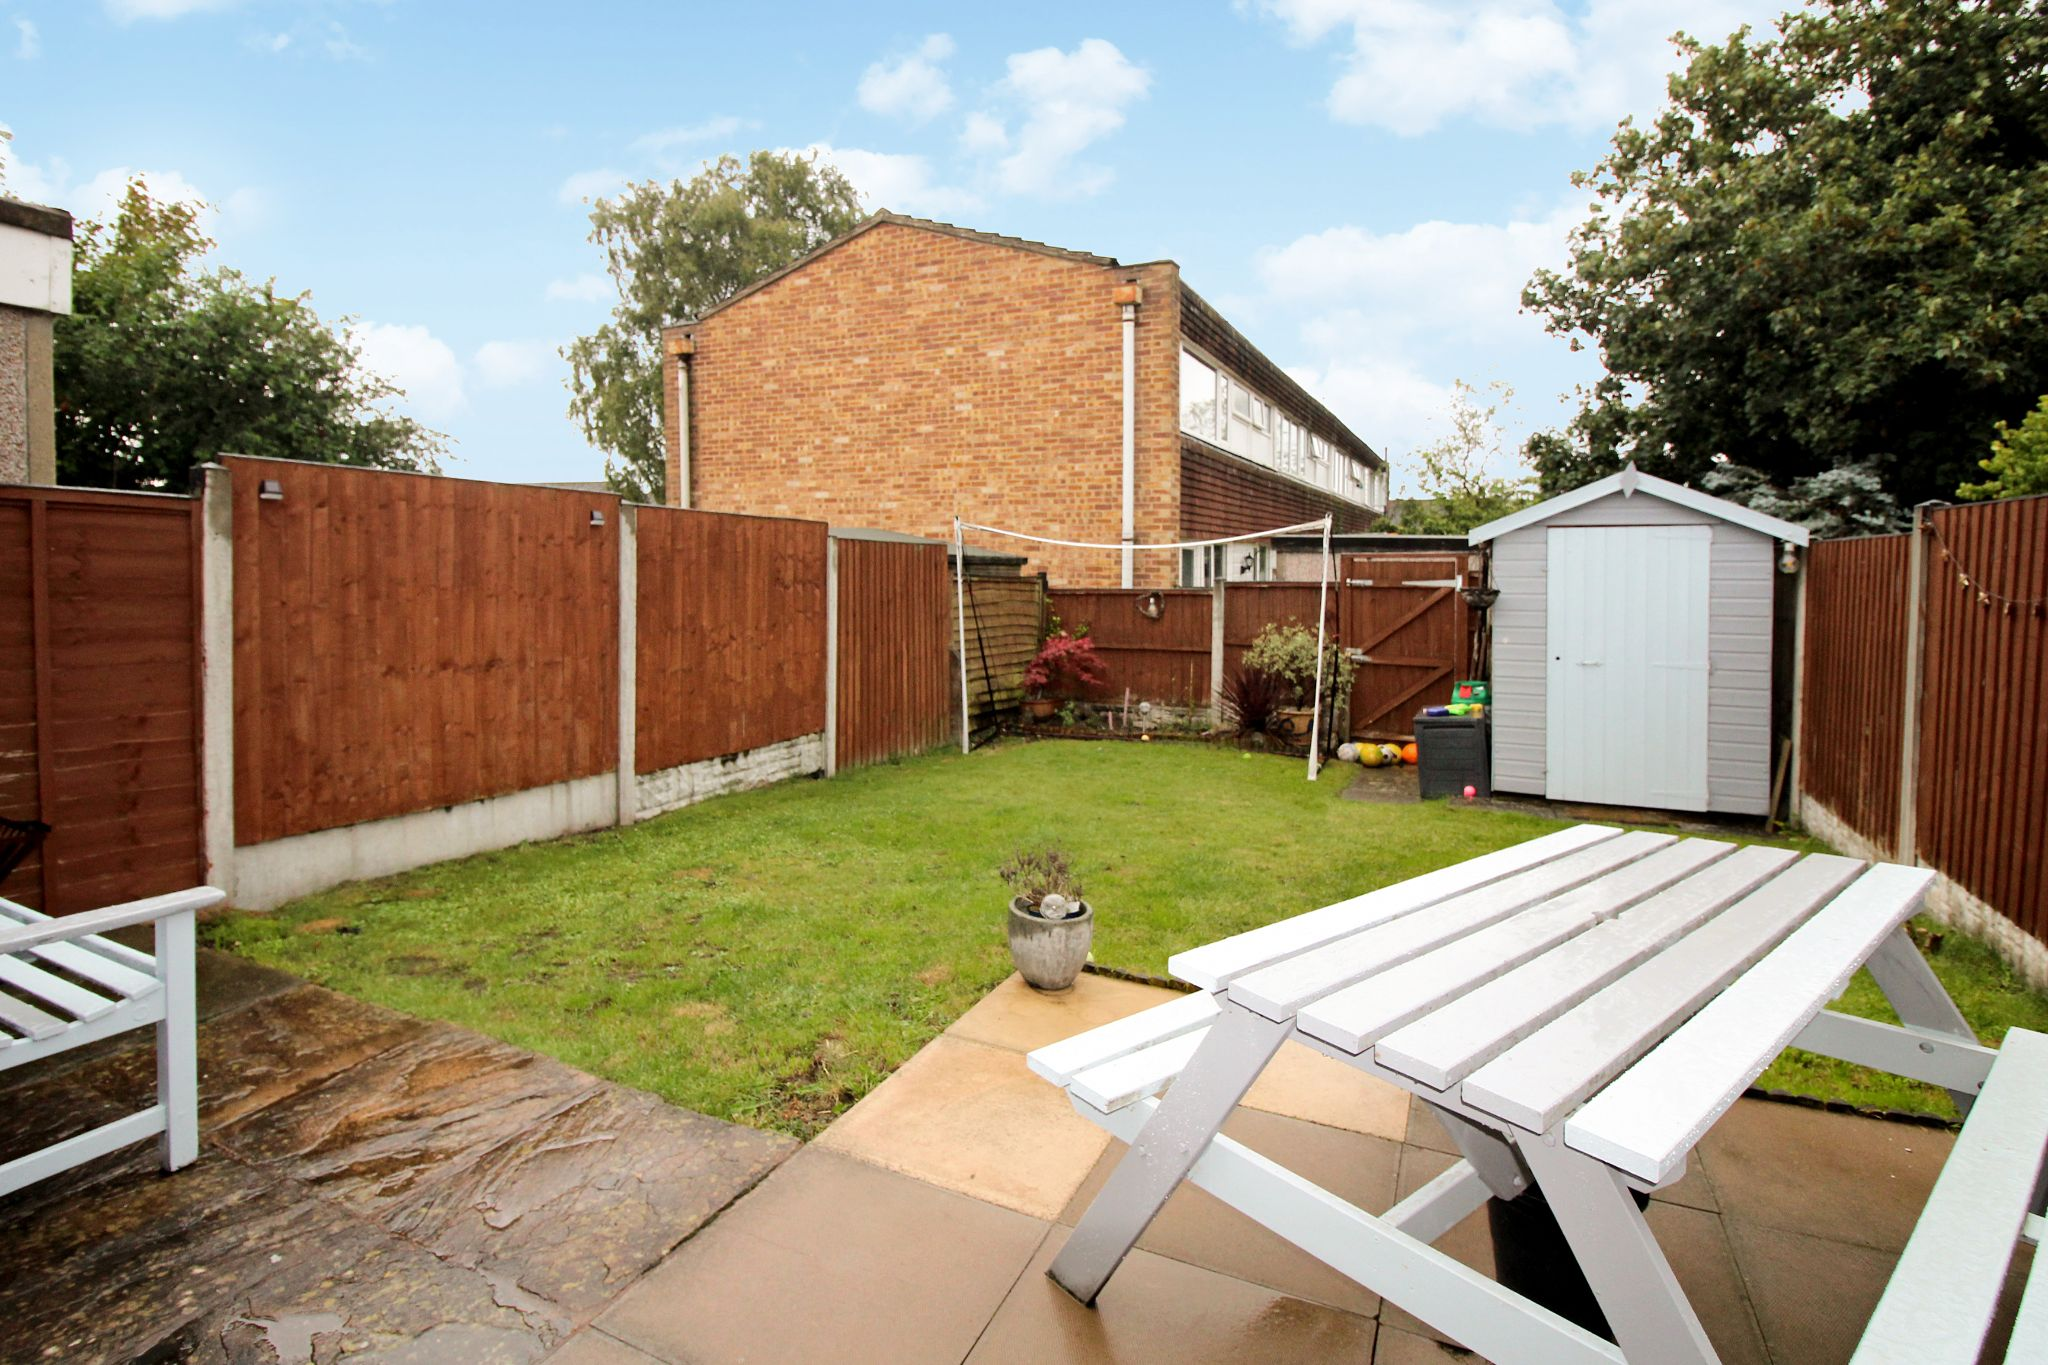 3 bedroom mid terraced house For Sale in Solihull - Photograph 6.